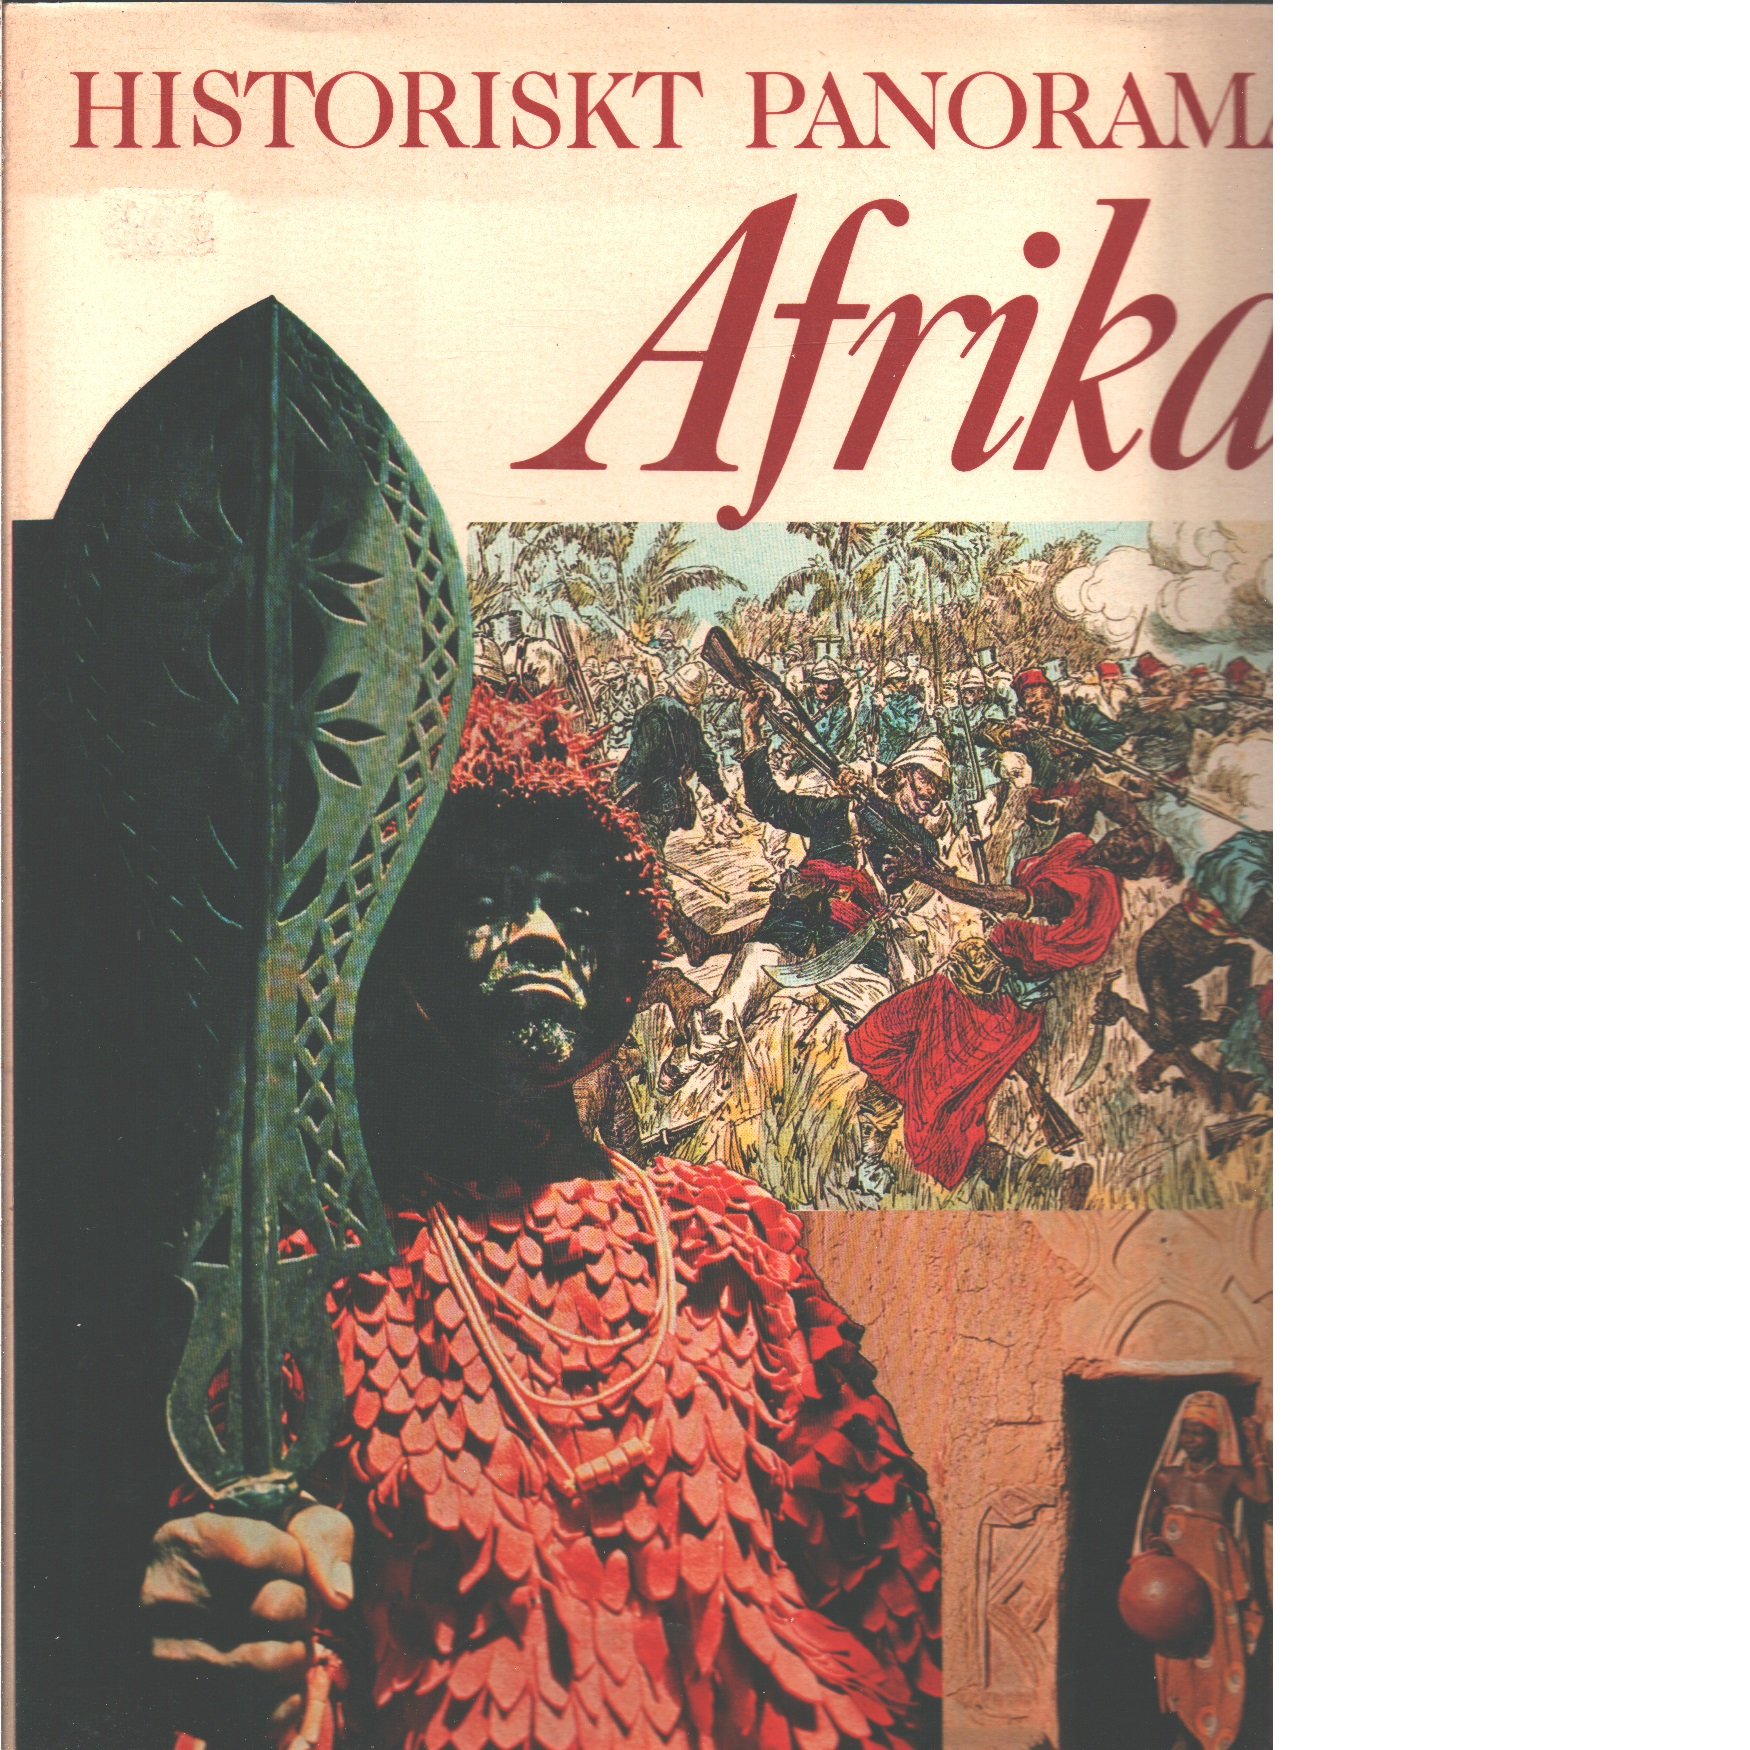 Historiskt panorama Afrika  - Red.